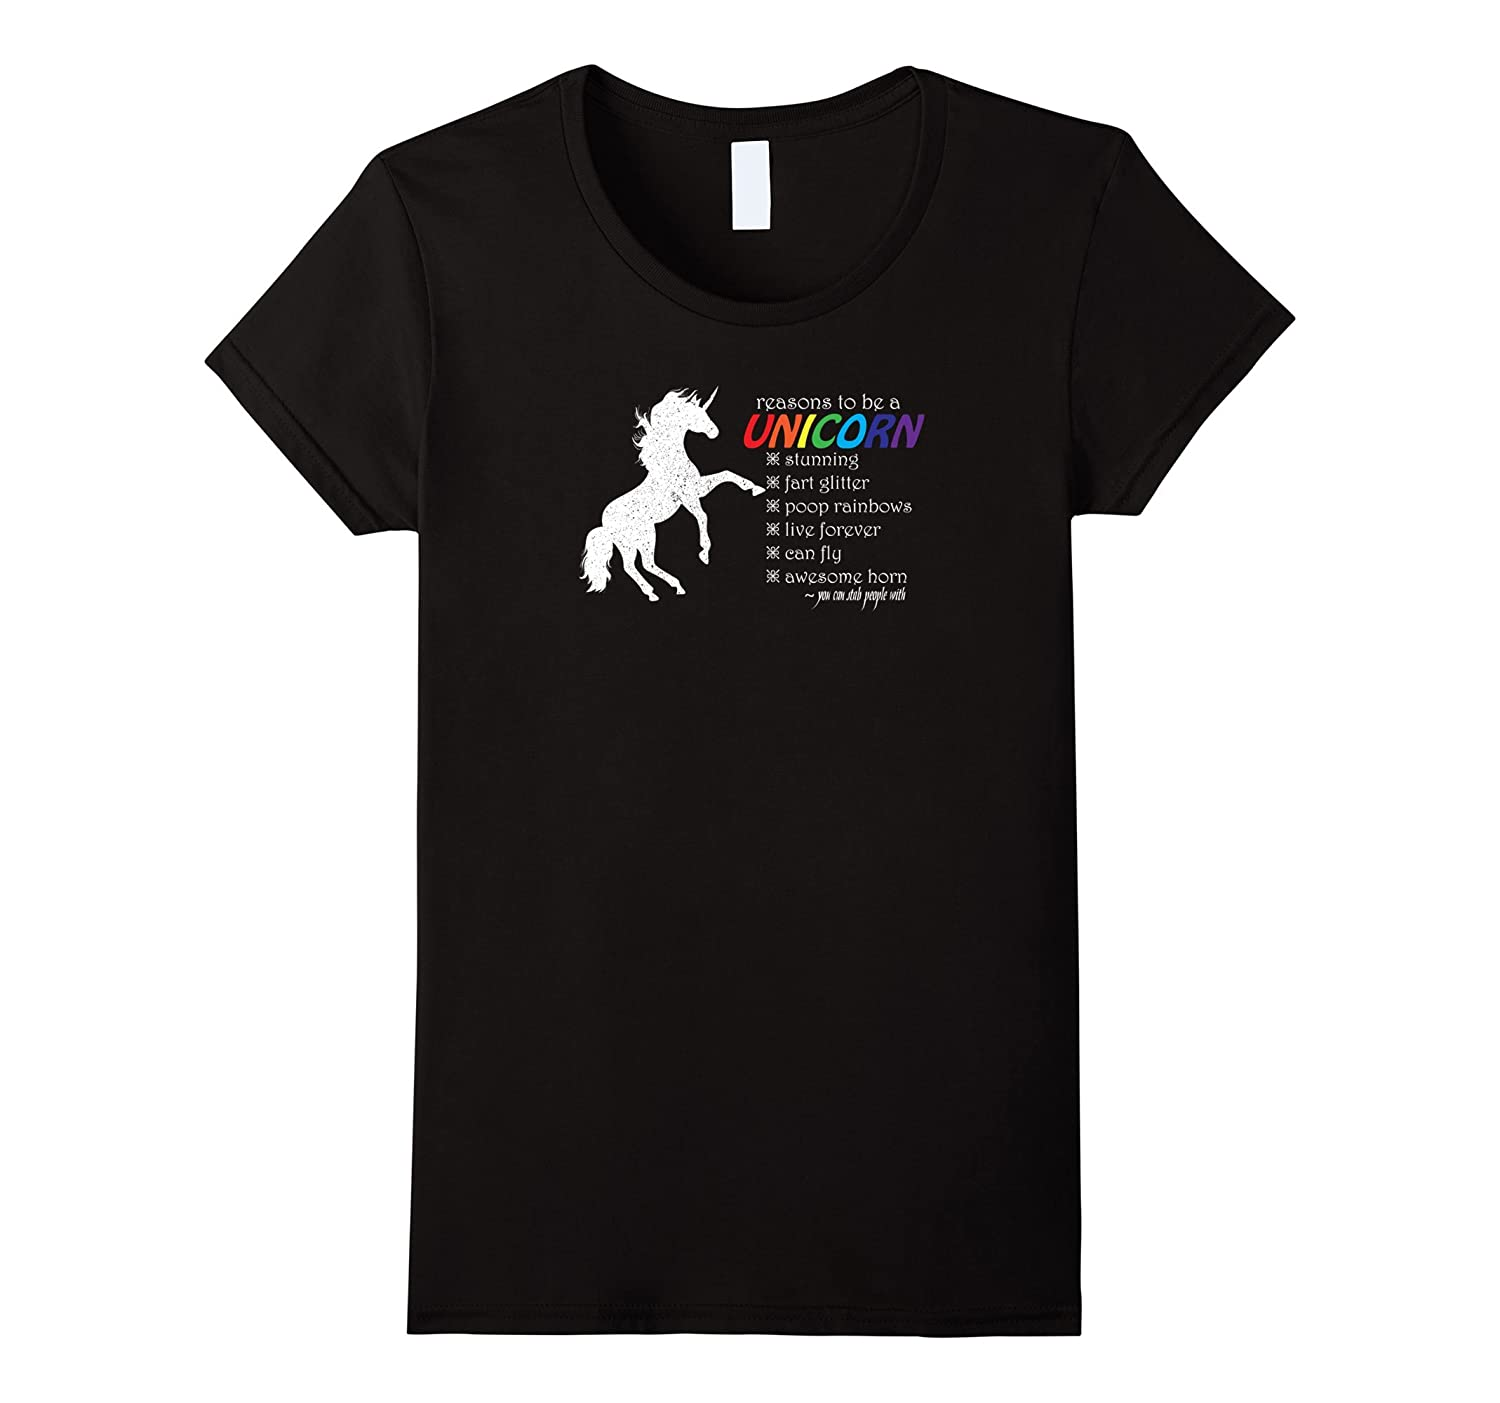 Reasons To Be A Unicorn T-Shirts With Funny Sayings